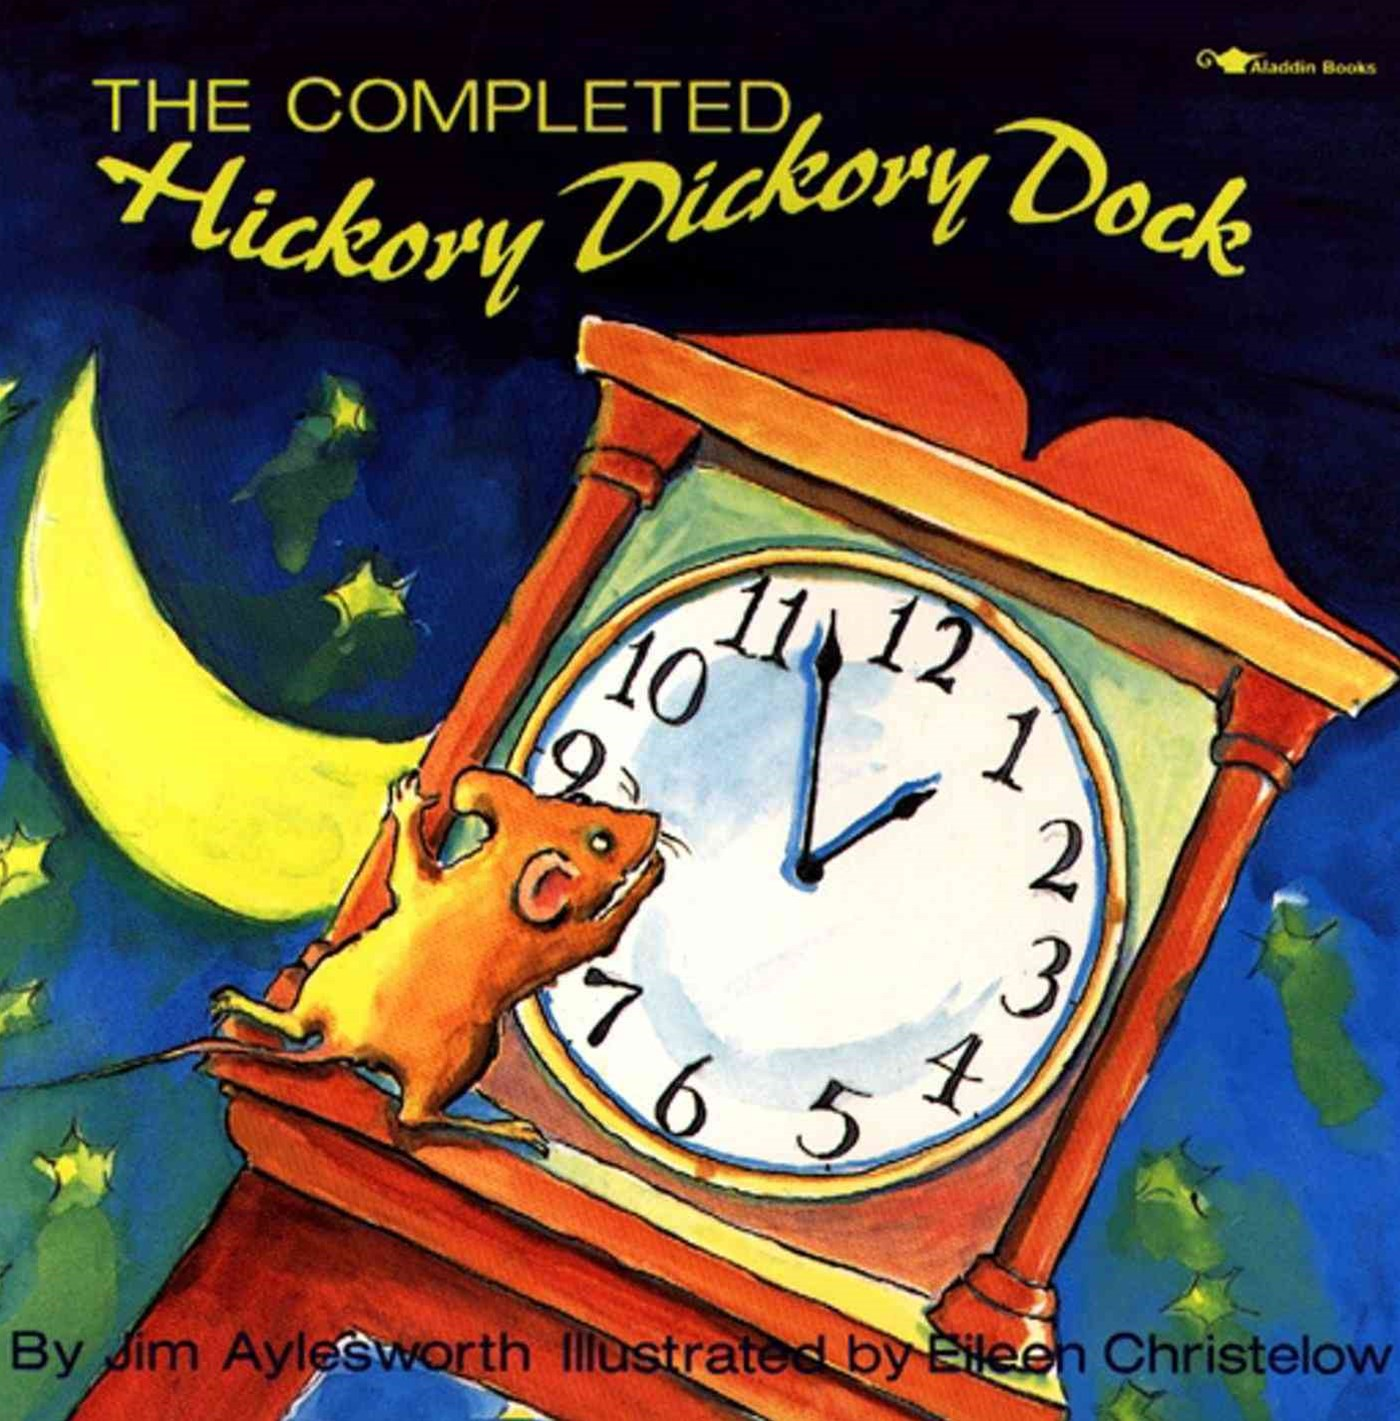 The Completed Hickory Dickory Dock